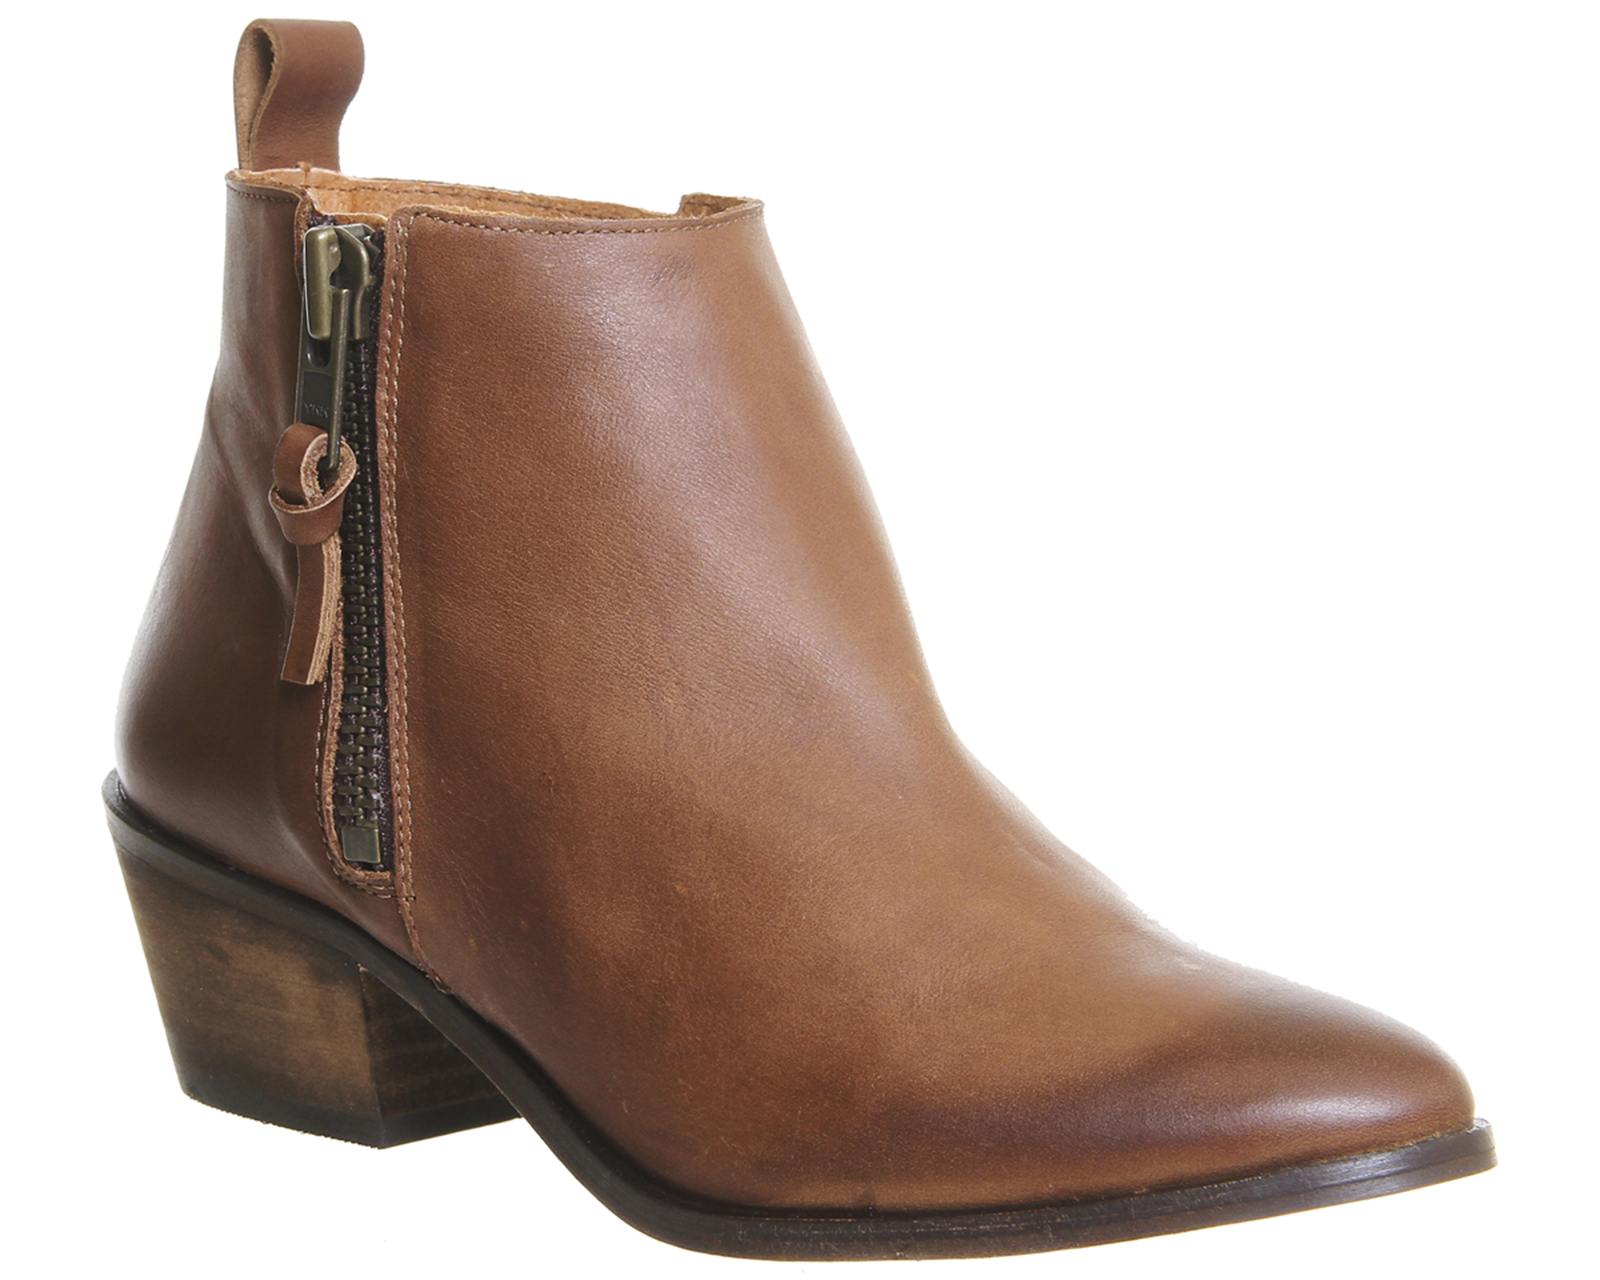 ladies tan leather ankle boots | Gommap Blog